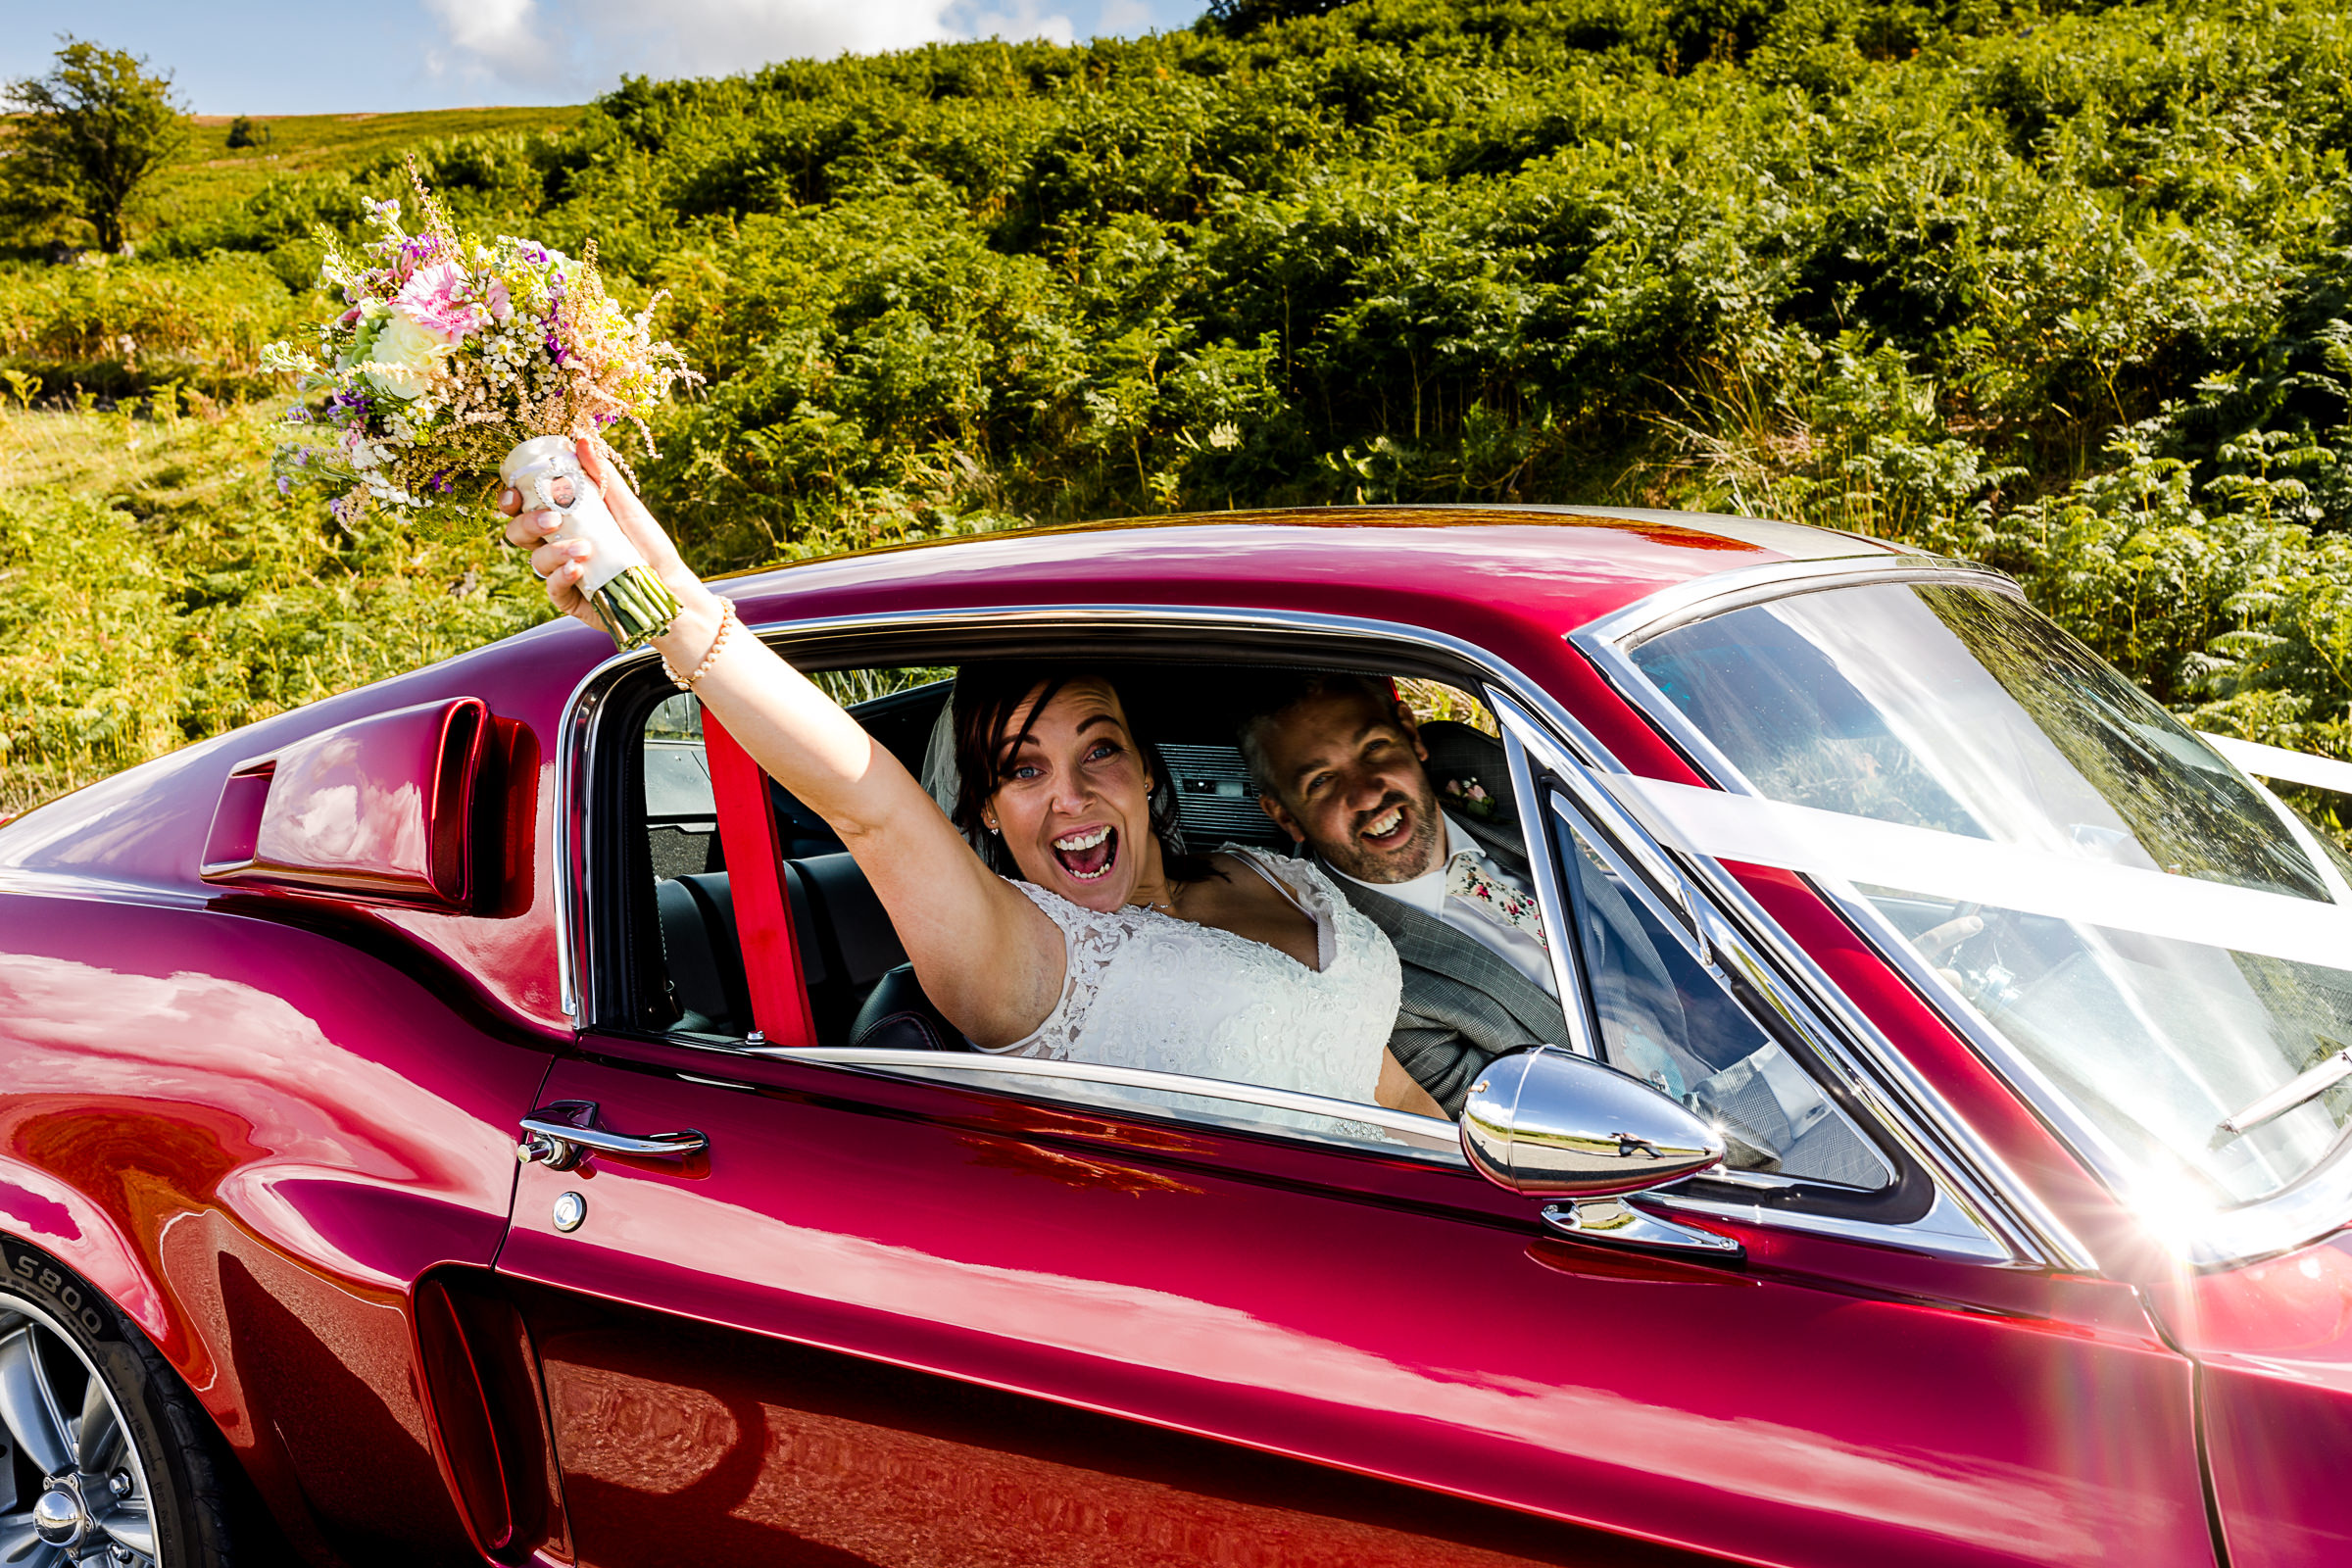 Mustang wedding photography